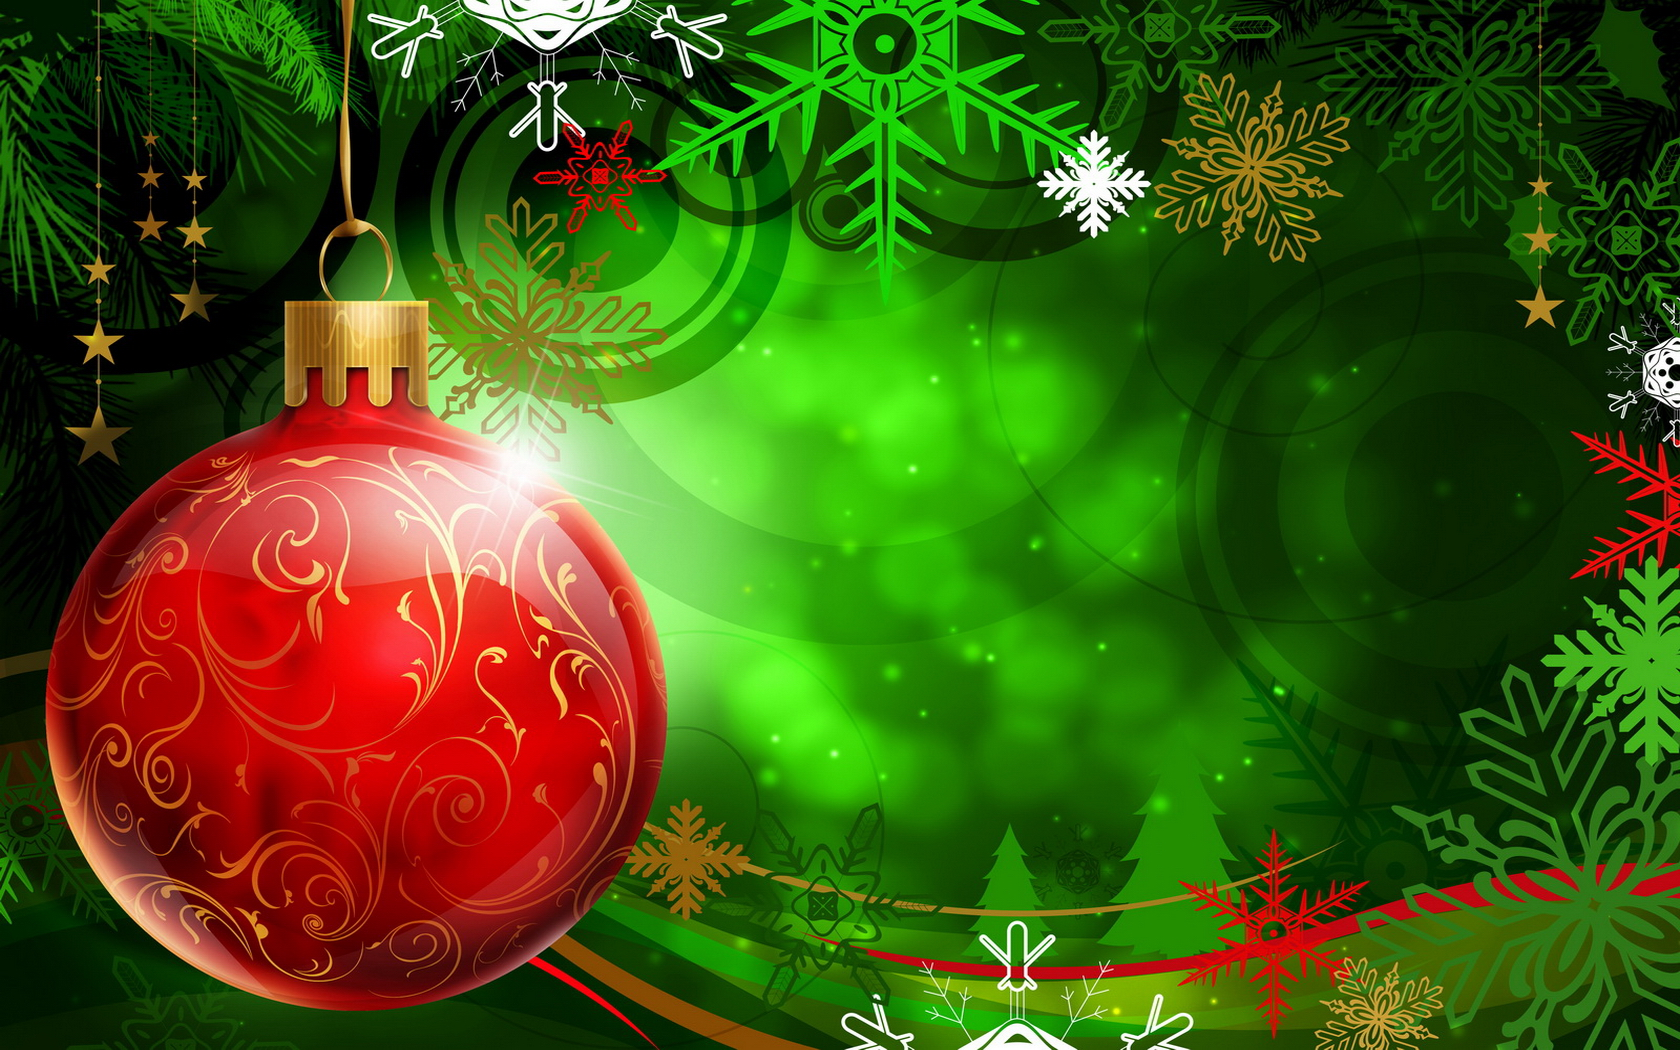 hd wallpapers 1080p Christmas Wallpaper 1080p 1680x1050